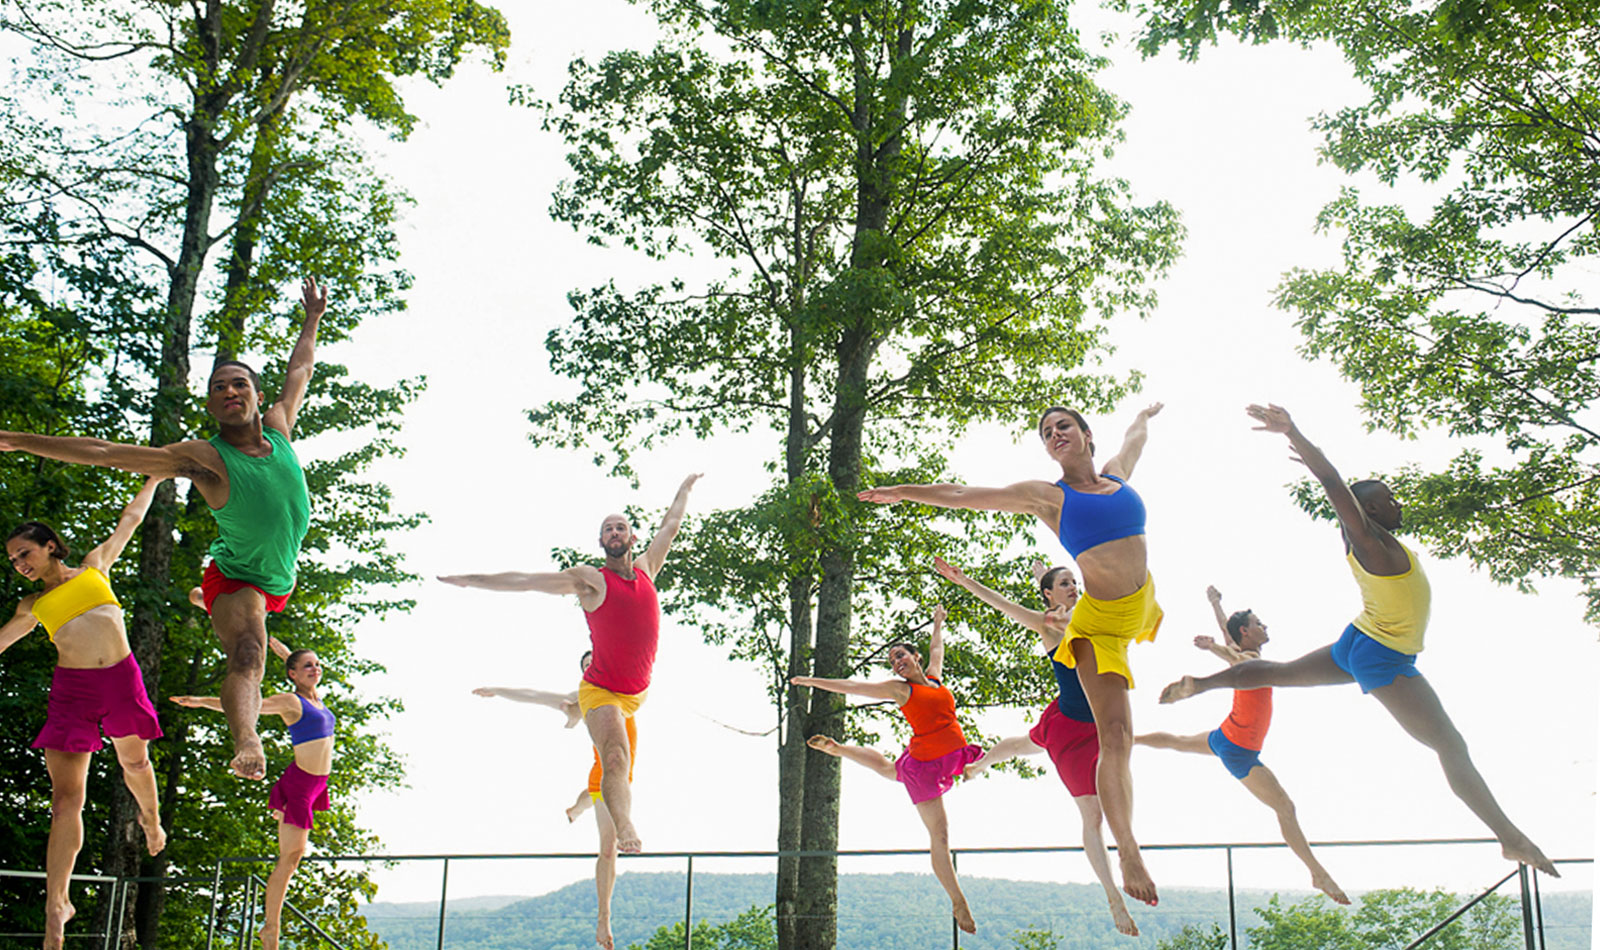 Culture drives growth and opportunity. - We want to give culture a crucial voice in the conversation about economic development at the state and local levels.Photo credit: Jacob's Pillow, Becket